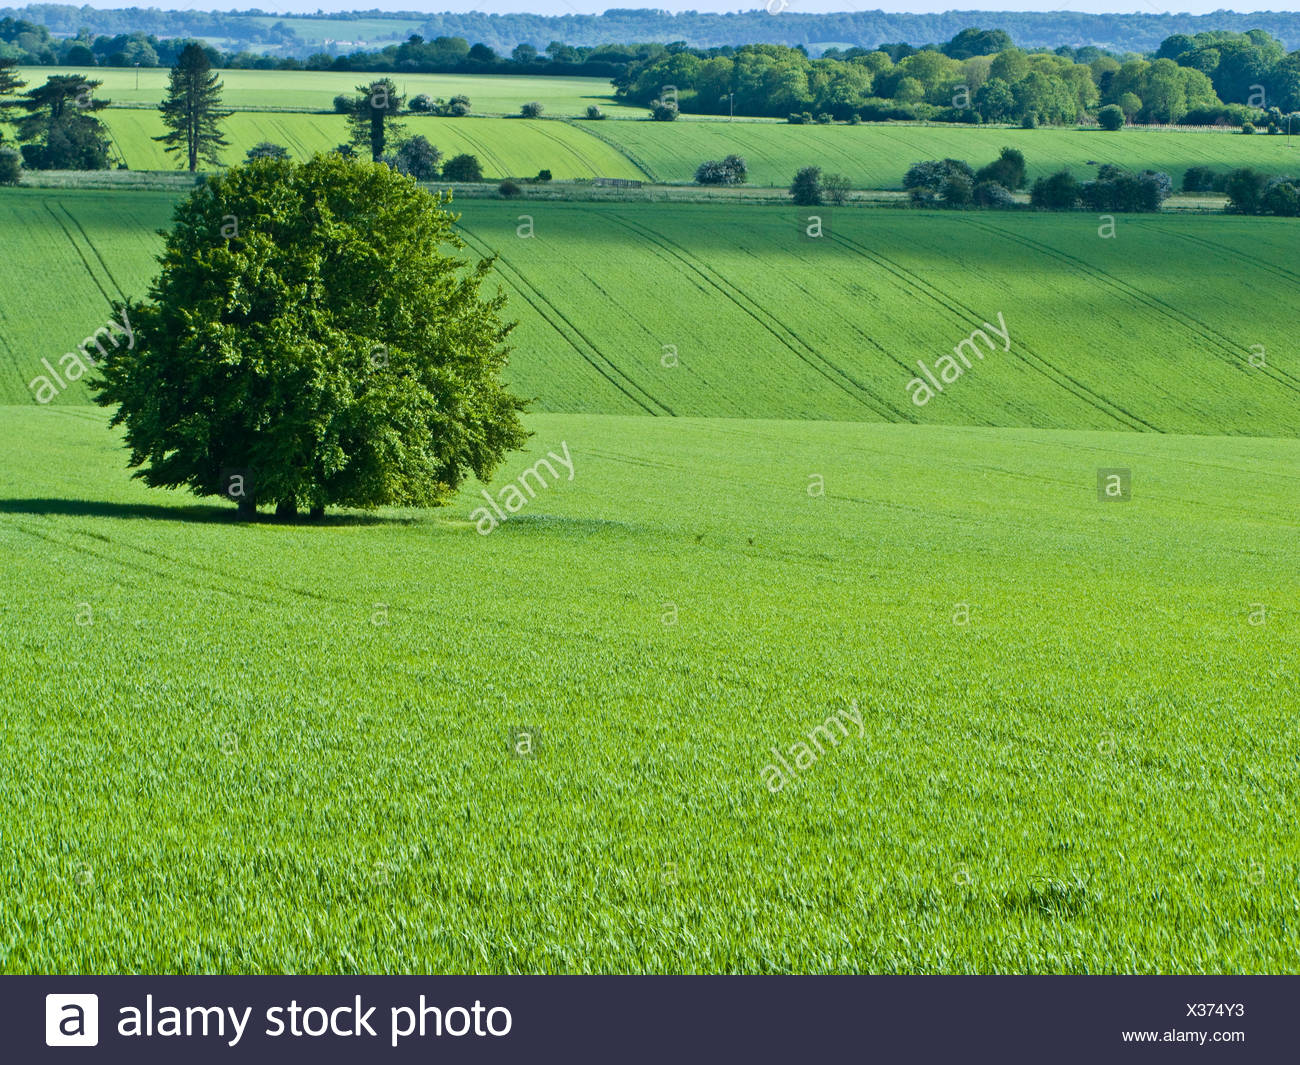 Green fields and tree - Stock Image